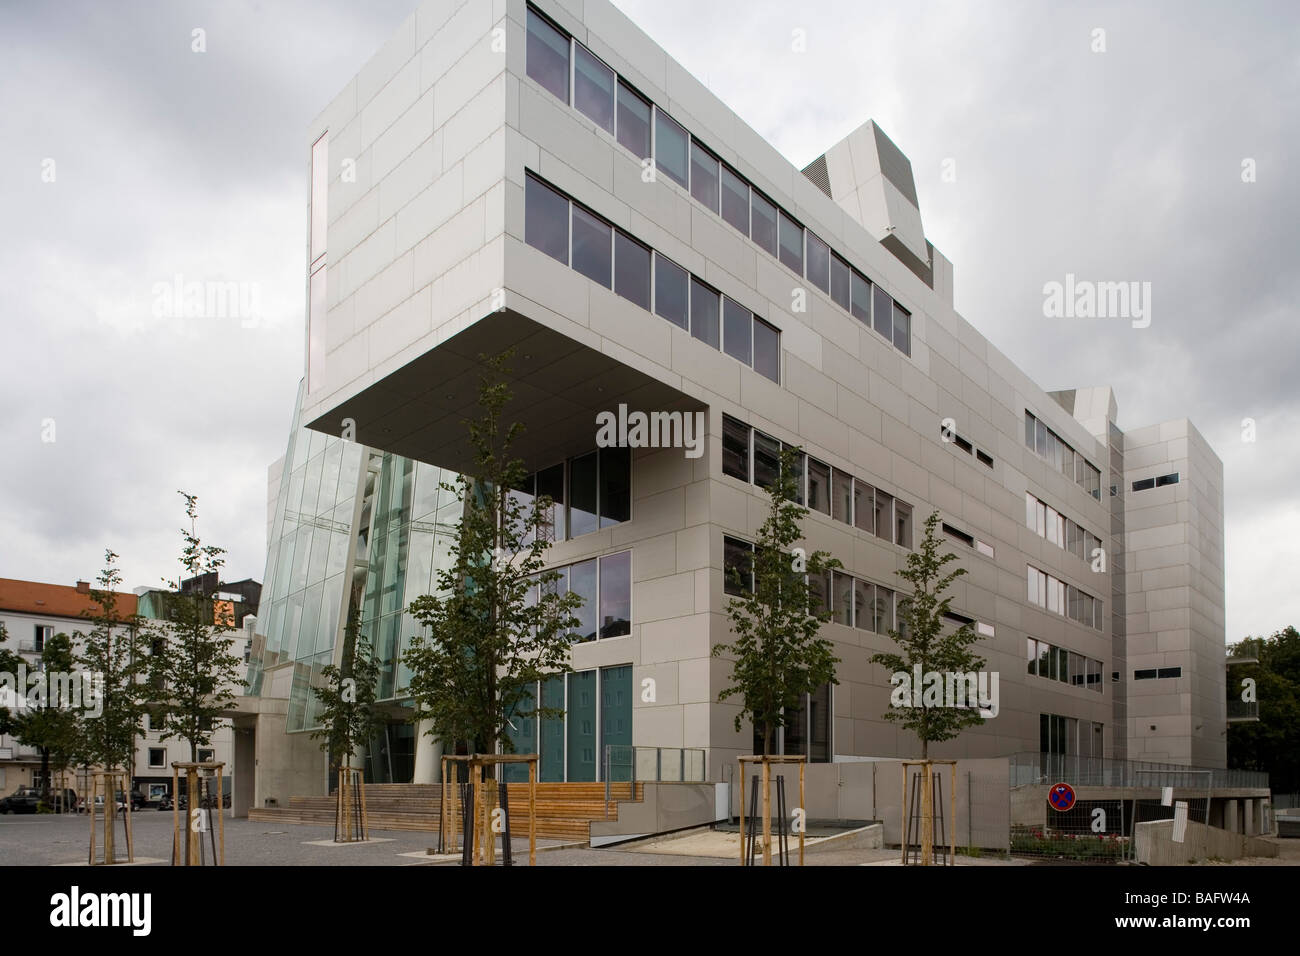 Academia of Fine Arts, Munich, Germany, Coop Himmelb(l)au, Academia of fine arts view from the south east. - Stock Image